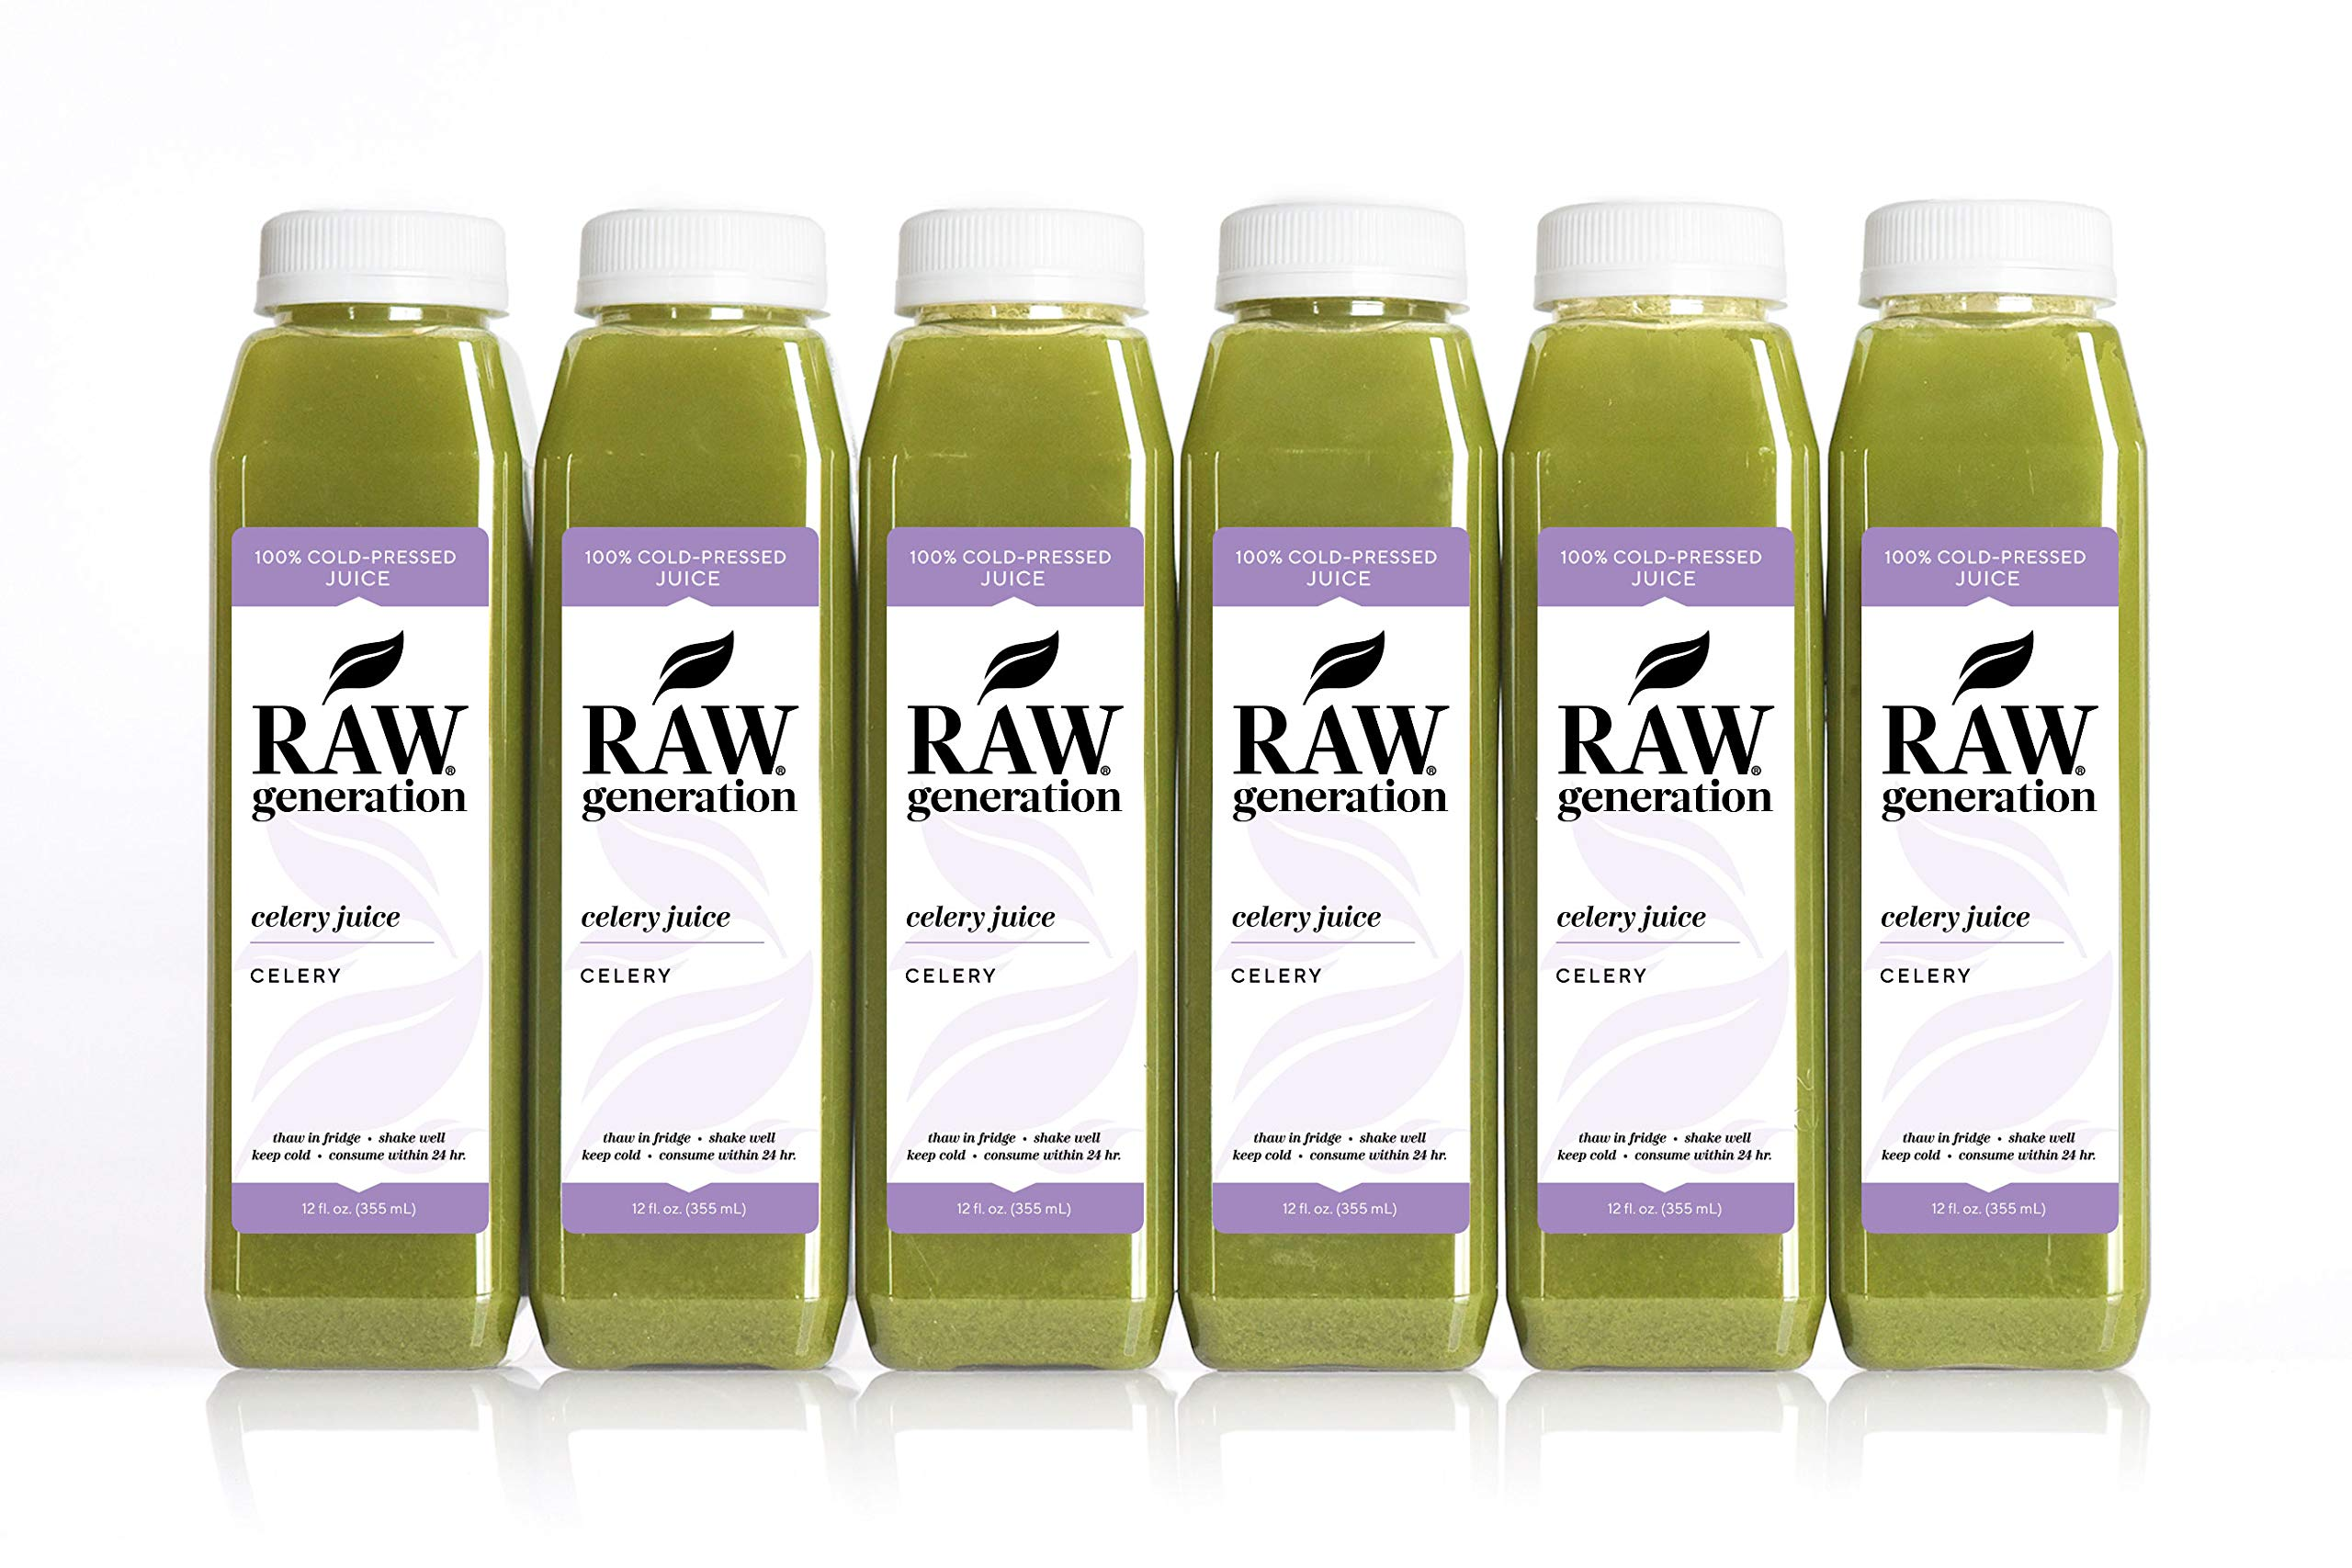 Celery Juice Daily Health Tonic by Raw Generation (18-Count) - 100% Pure Celery with a Splash of Lemon/Great for Detoxifying Your Body and Boosting Energy/Best to Use Once Daily on Empty Stomach by RAW generation